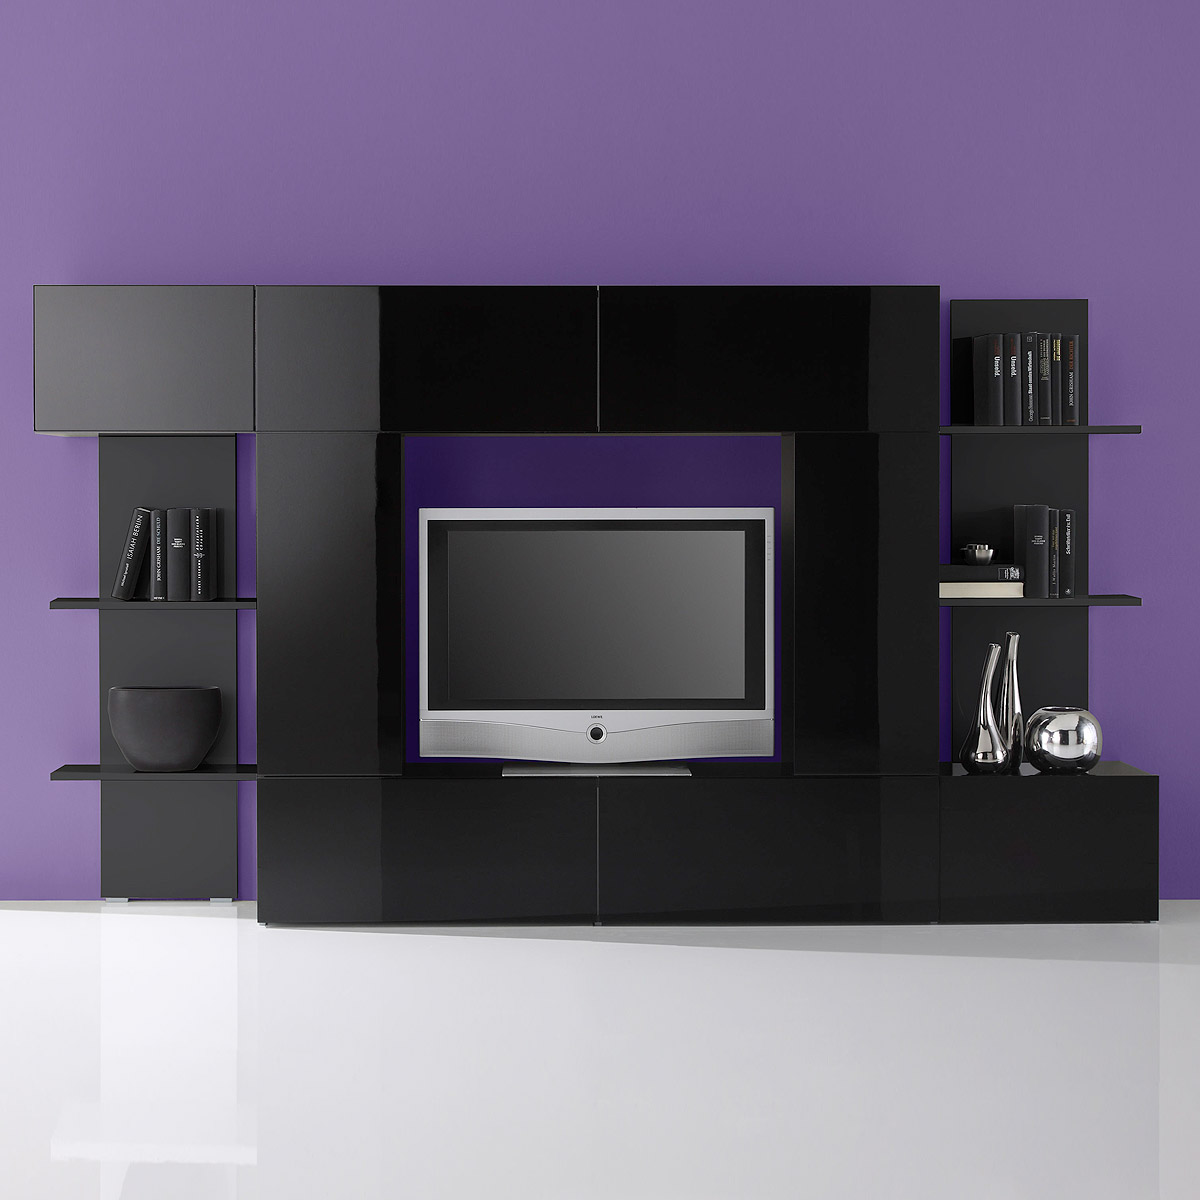 wohnwand cubo anbauwand schwarz hochglanz lackiert eur 223 22 picclick de. Black Bedroom Furniture Sets. Home Design Ideas